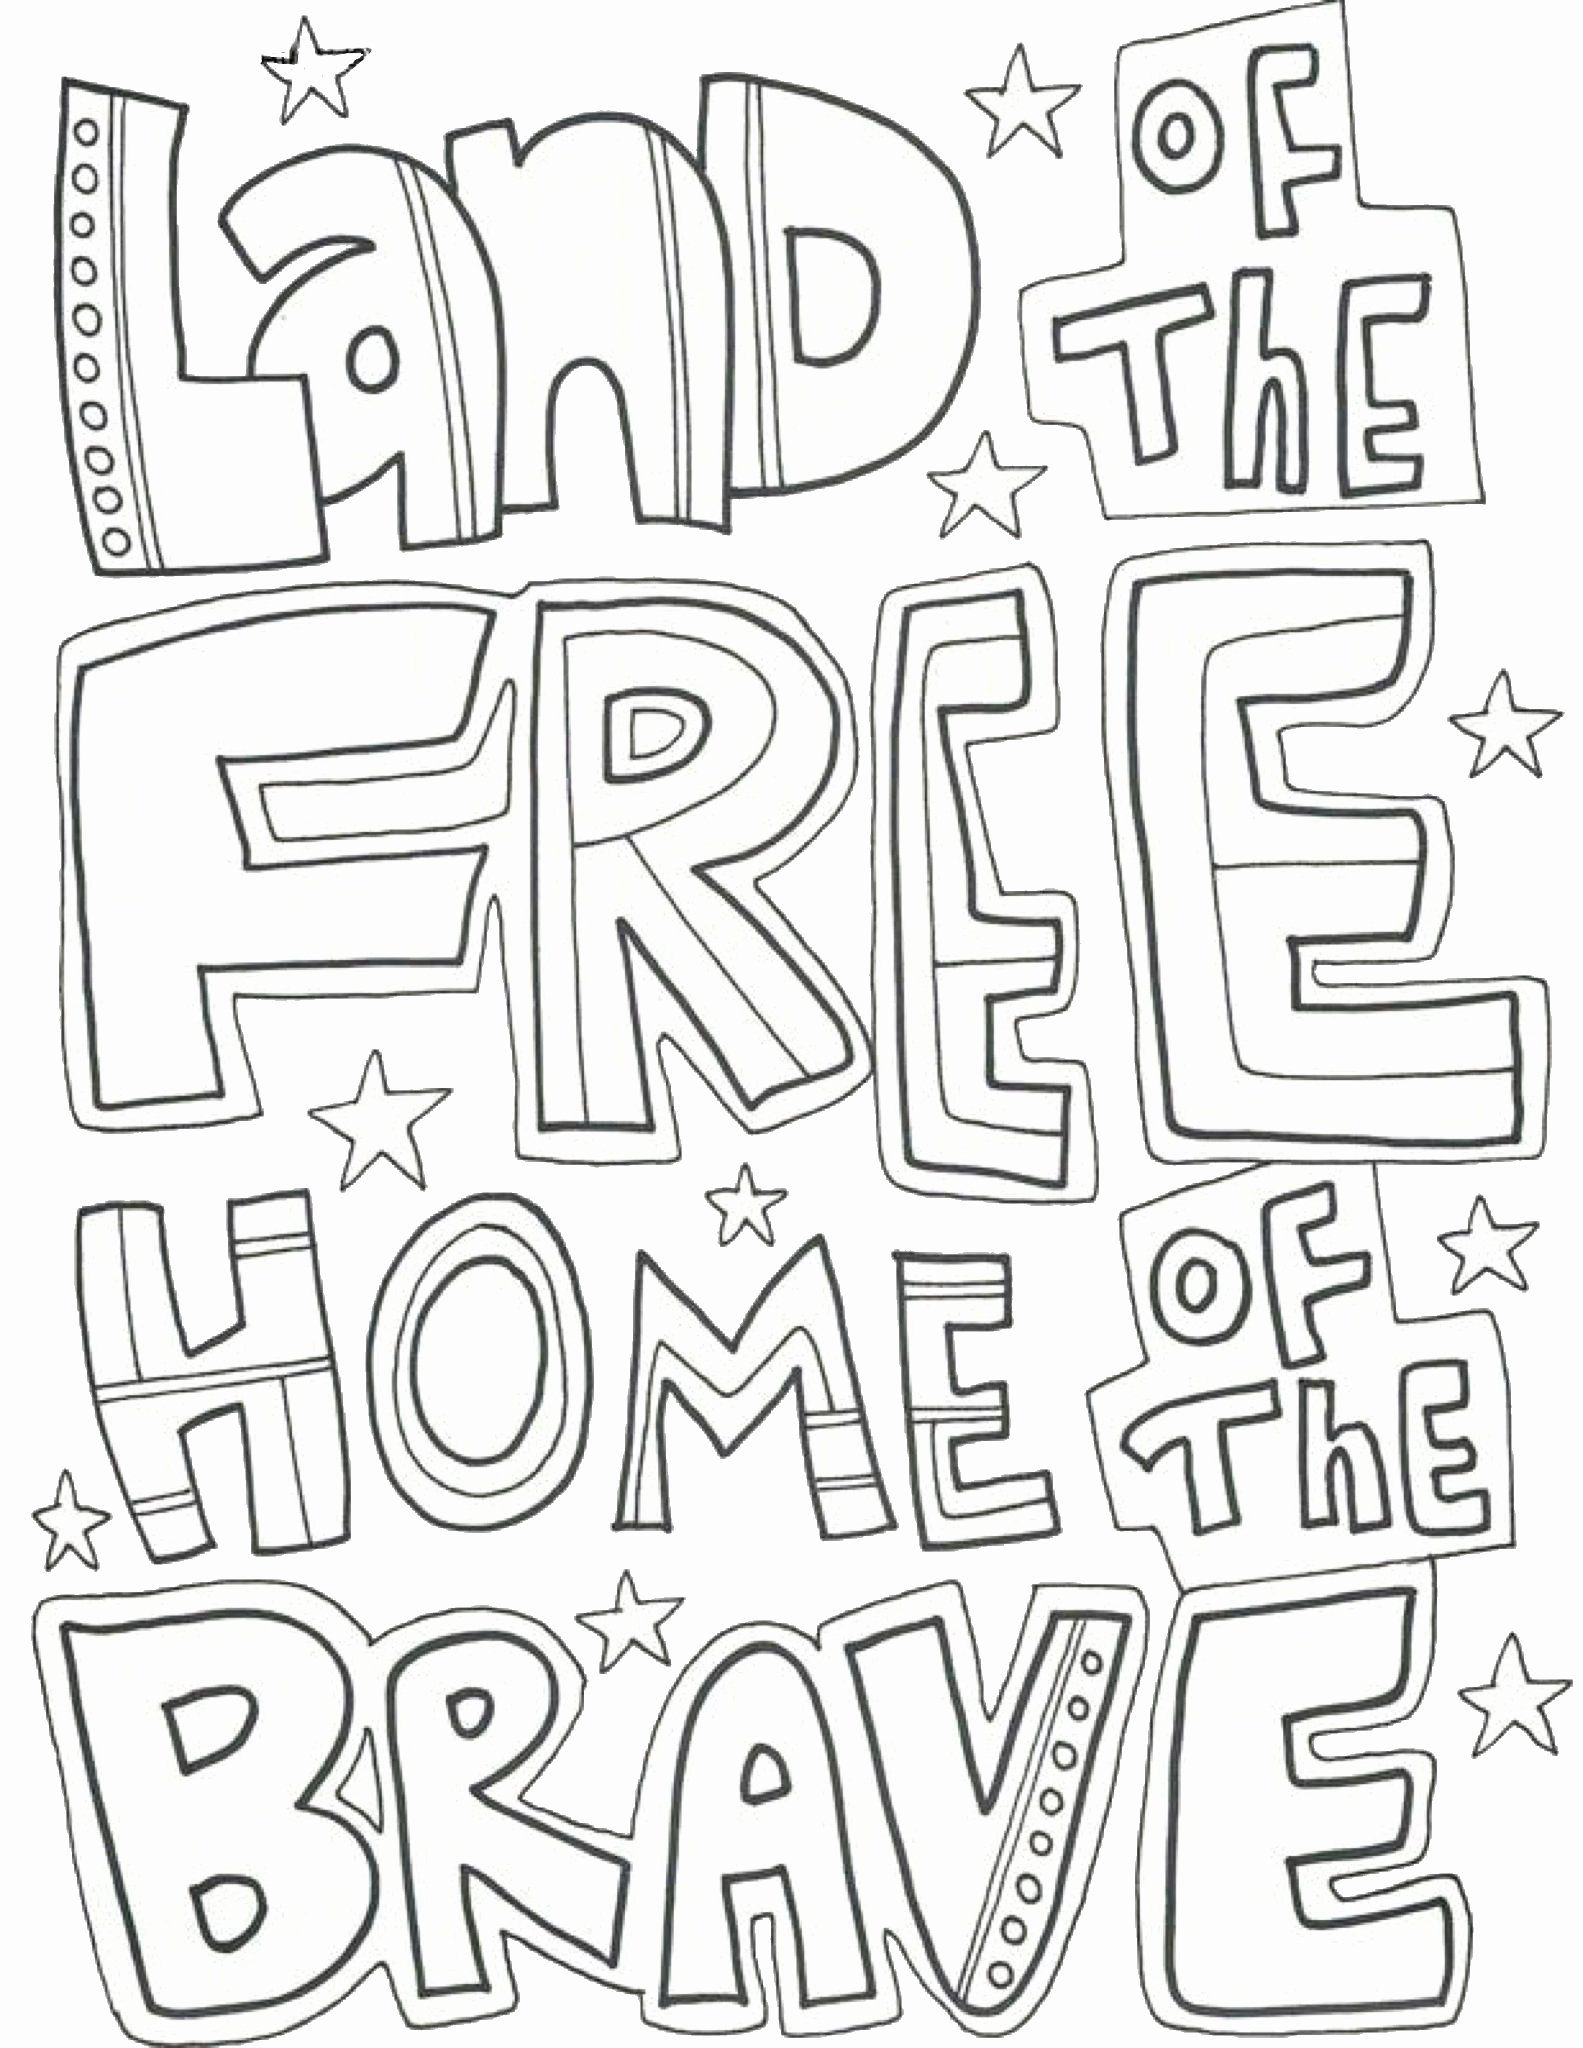 Coloring Page Memorial Day Beautiful Veterans Day Coloring Pages For Kids Memorial Day Coloring Pages Veterans Day Coloring Page Free Printable Coloring Pages